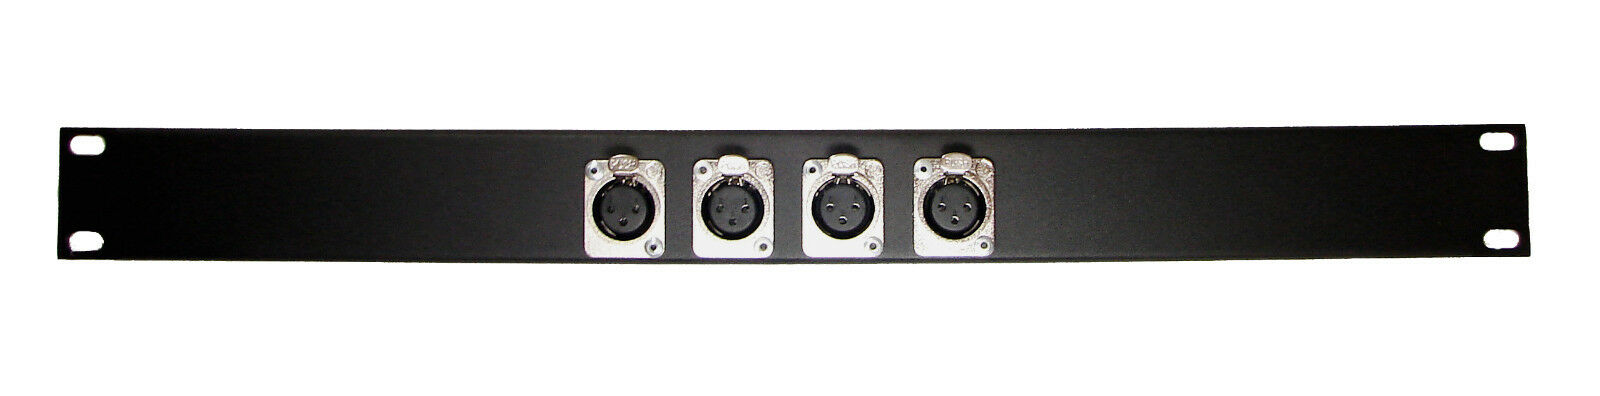 Procraft Formed Aluminum Rack Panel 8X4 Switchcraft Style XLR/'s Pre-Punched